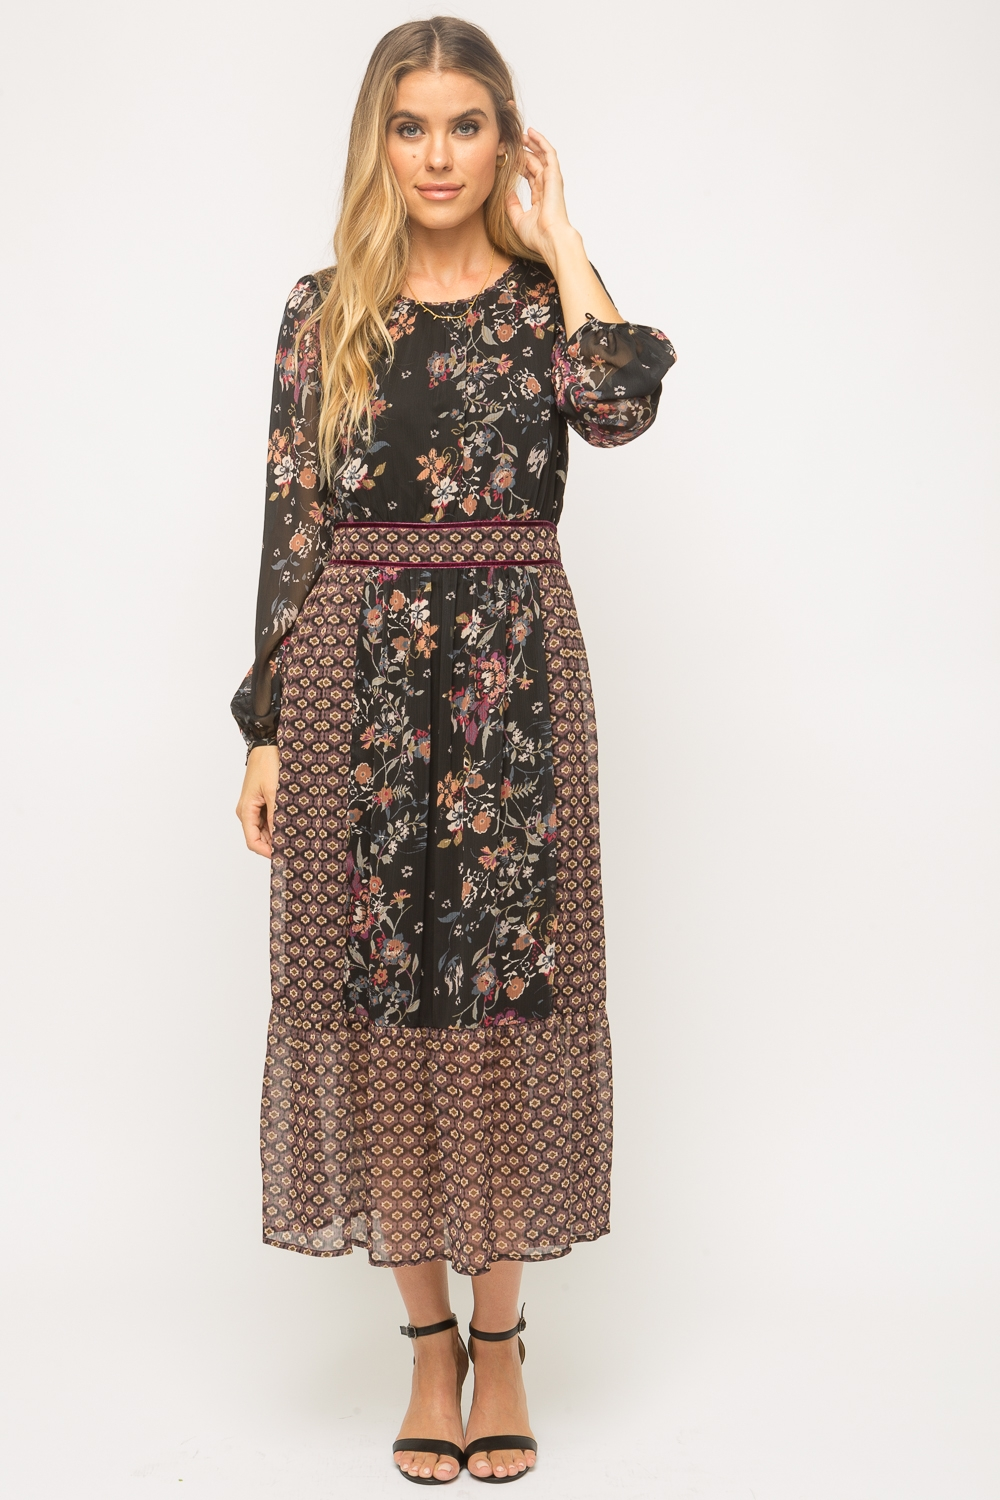 Mix Print Long Sleeve Dress from Mystree